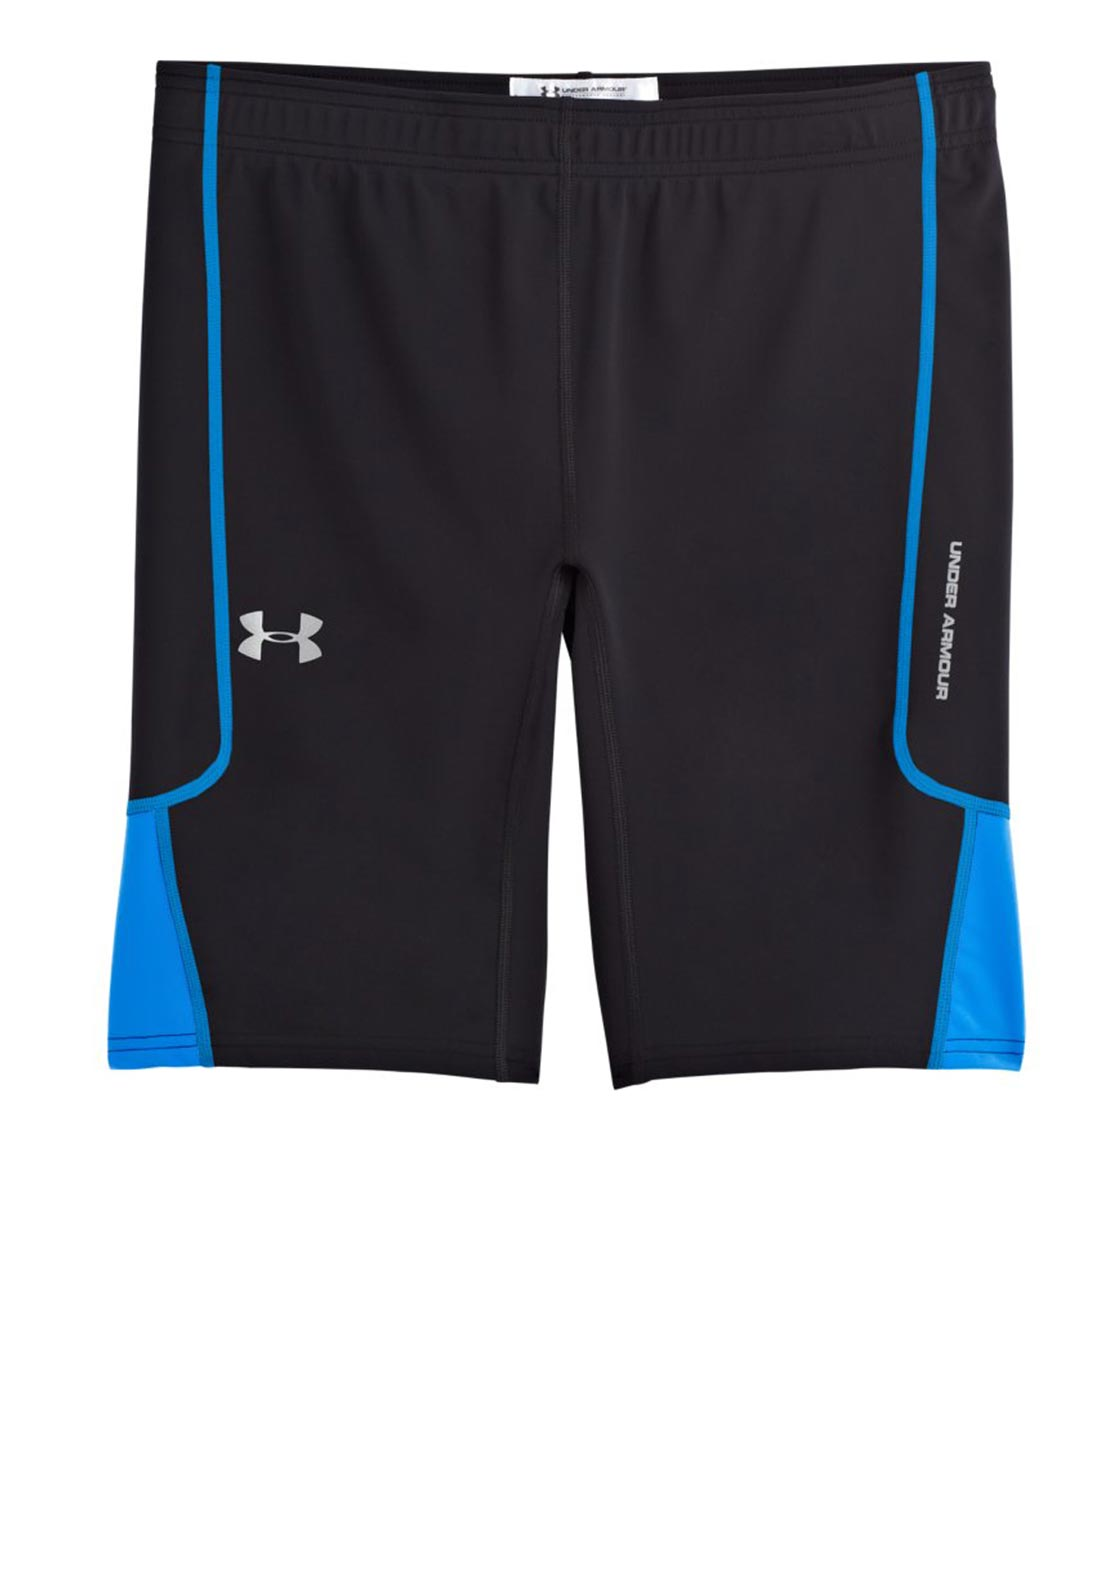 Under Armour Mens UA Run Compression Shorts, Black